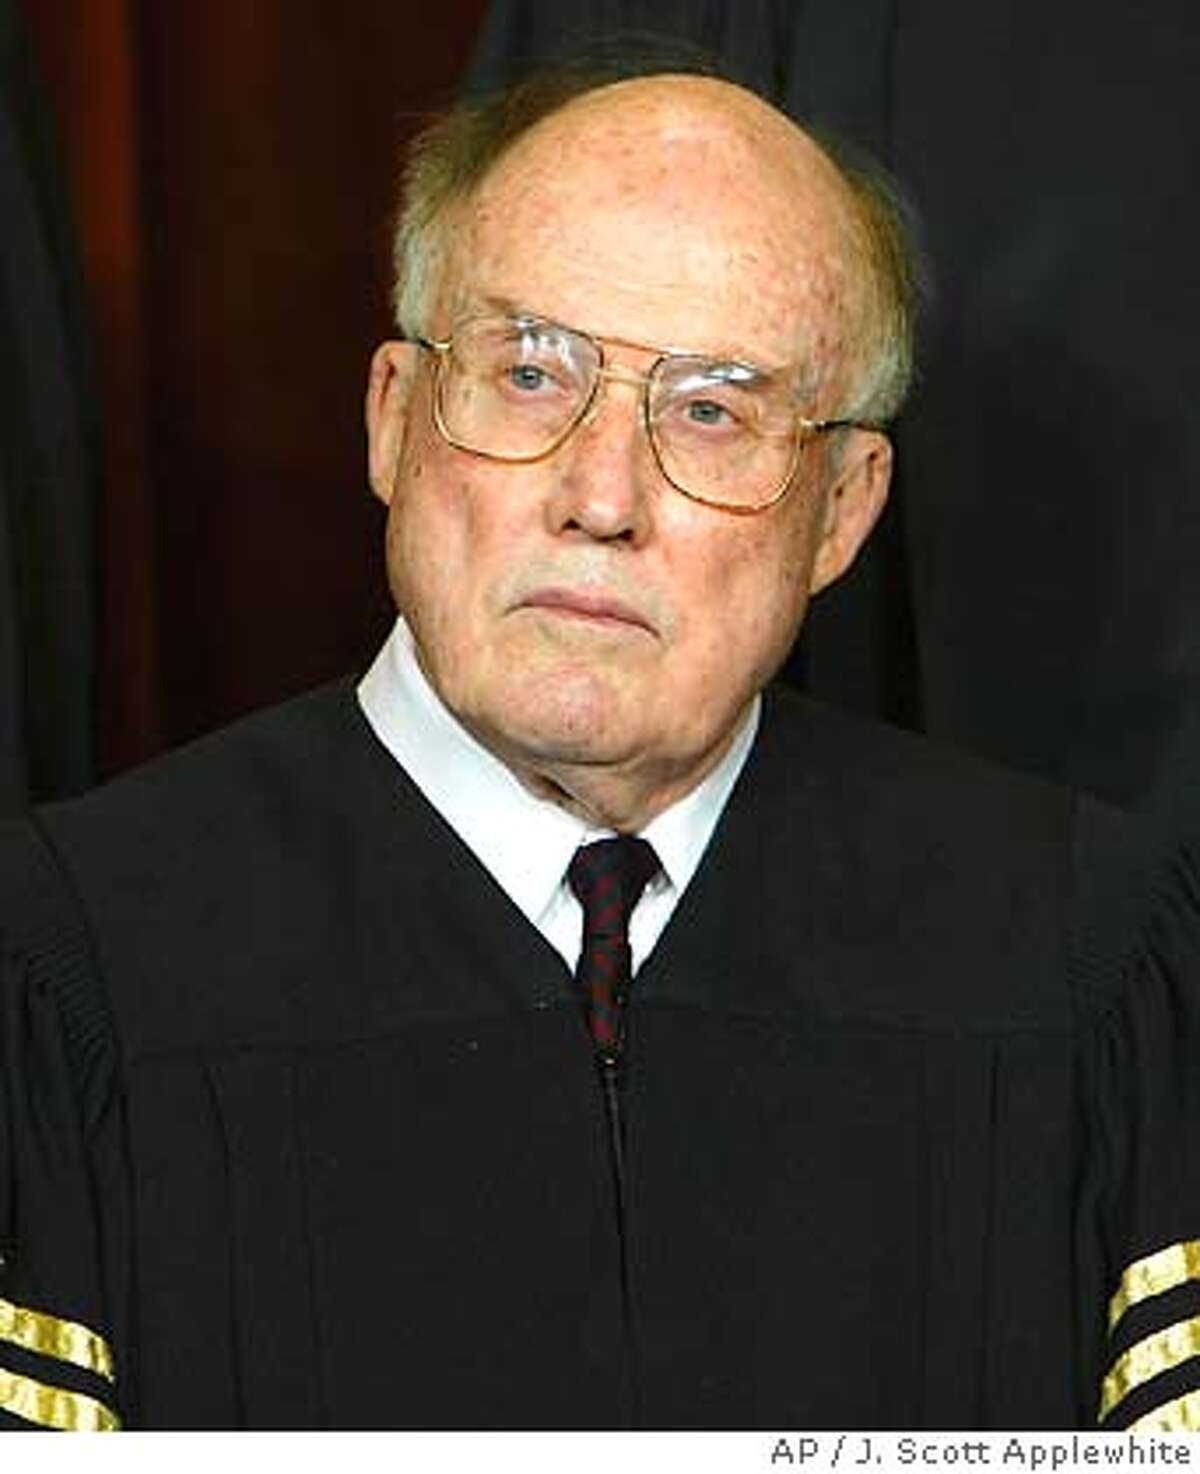 ** FILE ** Chief Justice of the United States William H. Rehnquist is seen in a file photo taken at the Supreme Court Building in Washington Dec. 05, 2003. Rehnquist has been hospitalized with thyroid cancer. (AP Photo/J. Scott Applewhite, File) Ran on: 10-26-2004 Chief Justice William Rehnquist, 80, underwent a tracheotomy over the weekend. Ran on: 10-26-2004 Chief Justice William Rehnquist, 80, underwent a tracheotomy over the weekend. Ran on: 11-14-2004 William Rehnquist, 80, was nominated by Richard Nixon and elevated by Ronald Reagan. Ran on: 11-14-2004 William Rehnquist, 80, was nominated by Richard Nixon and elevated by Ronald Reagan. DEC. 5, 2003 FILE PHOTO Ran on: 01-01-2005 William Rehnquist, chief justice, thanked those who have wished him a speedy recovery.